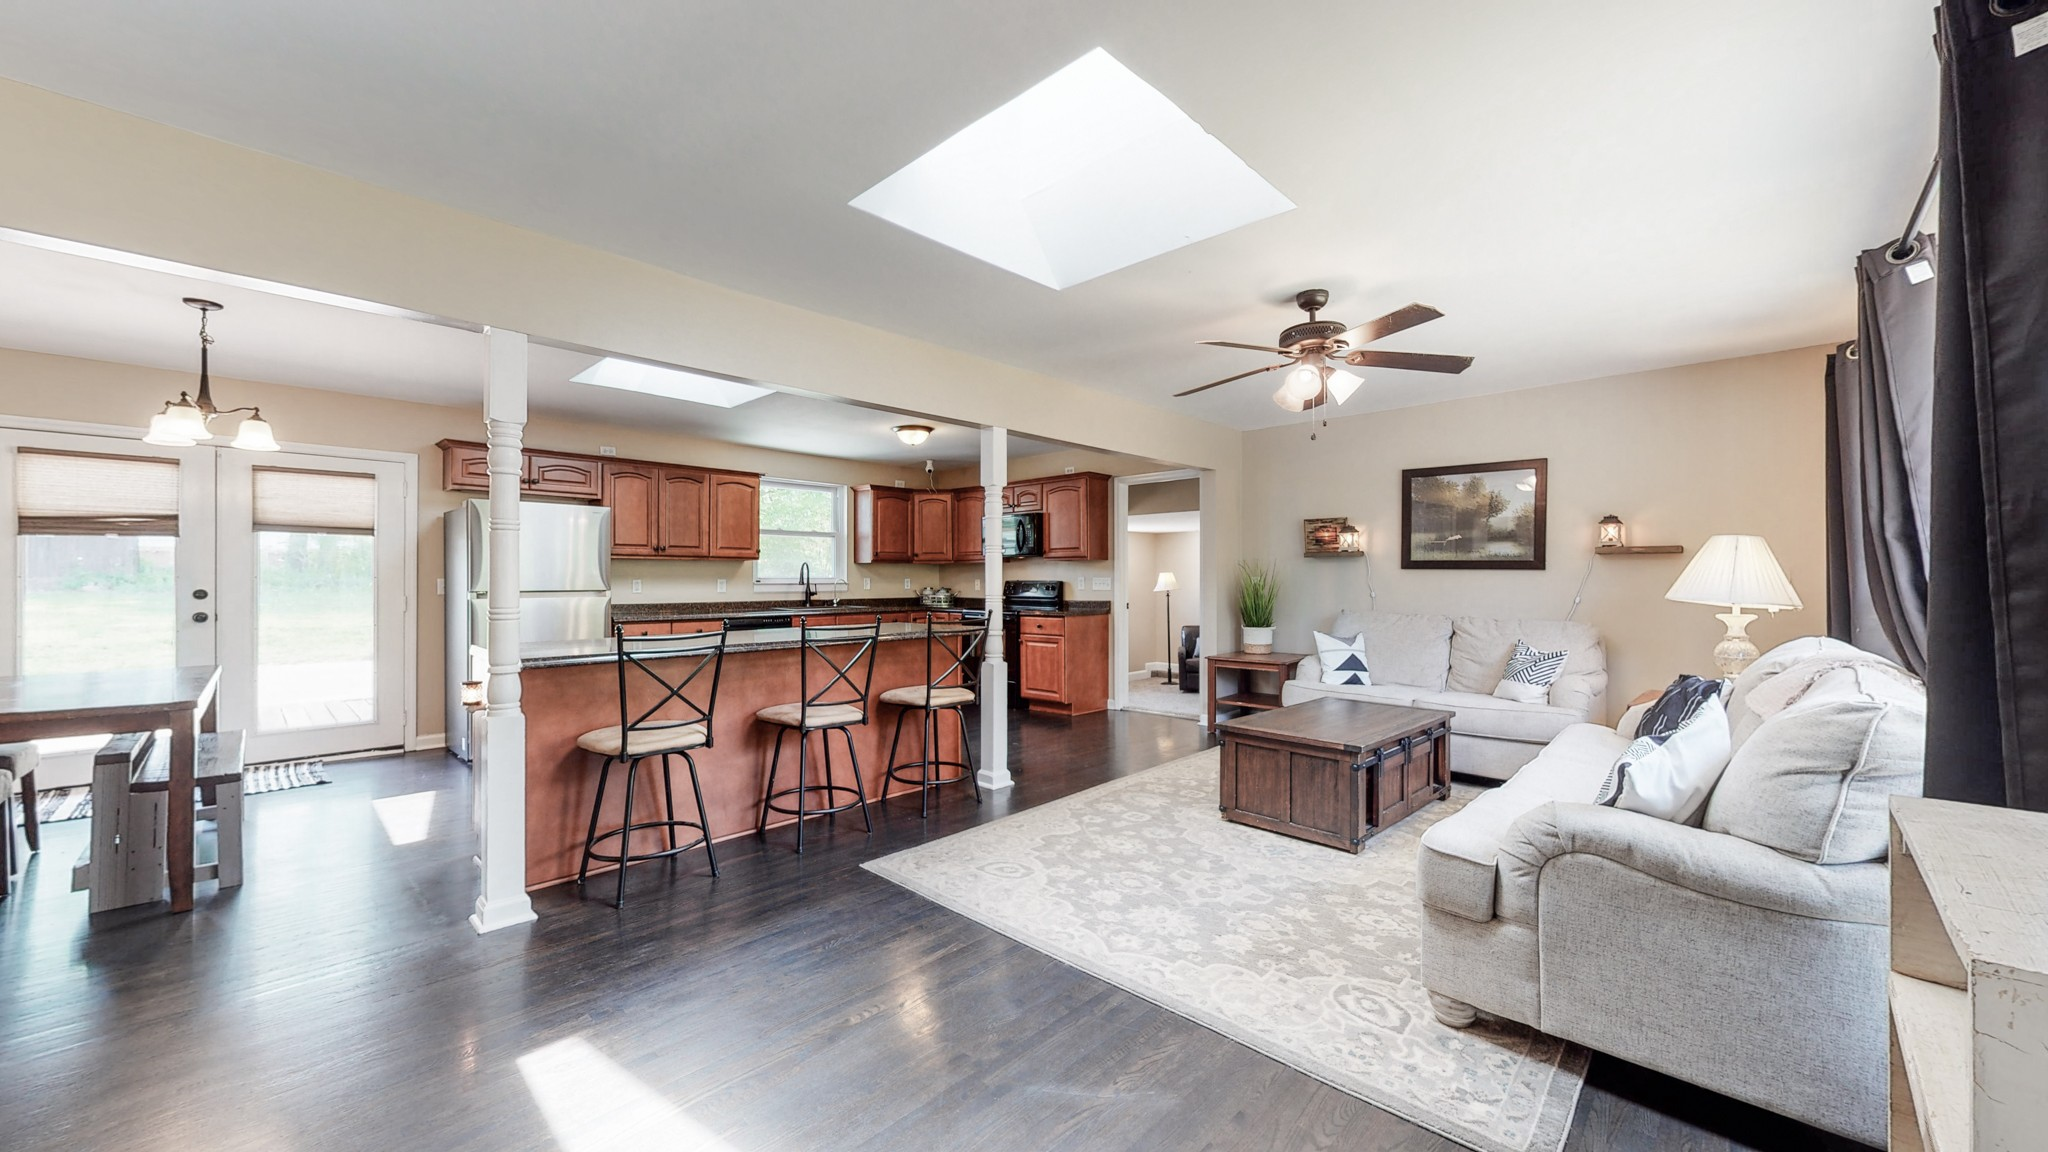 109 Meadowbrook Dr Property Photo - Clarksville, TN real estate listing